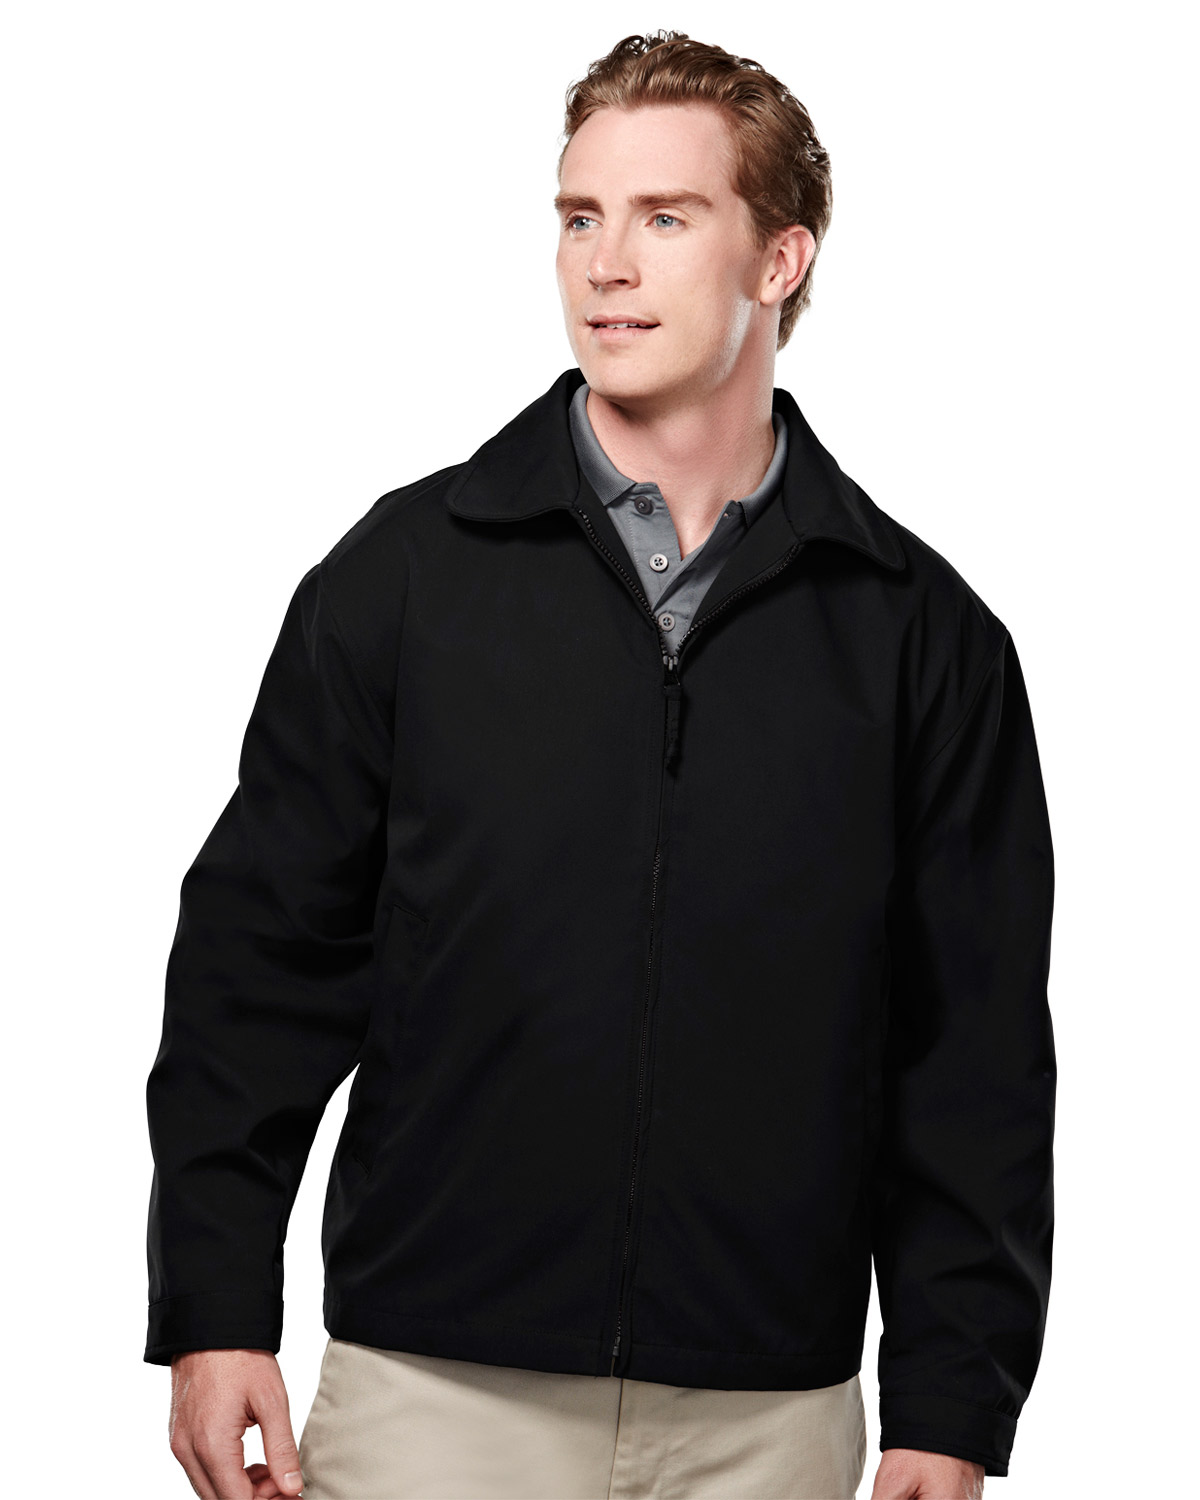 Tri-Mountain 2990 Men's Avenue Soft Twill Polyester Jacket With Nylon Lining at GotApparel